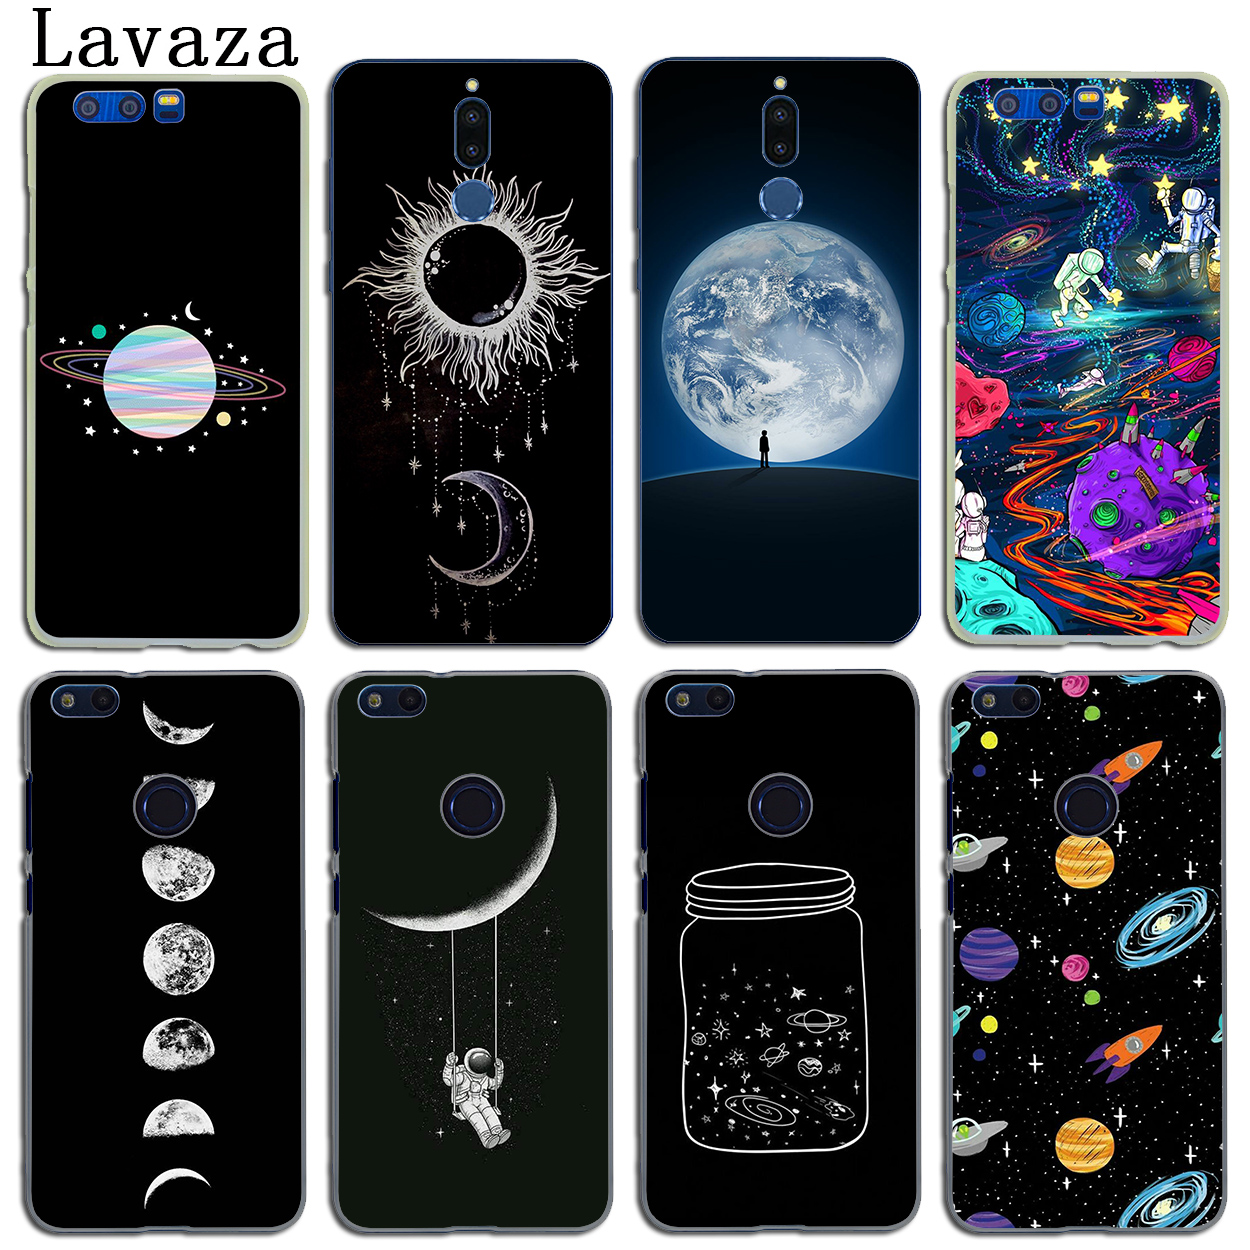 Lavaza Space Love Sun Moon Star drawing Case for Huawei Y6 Y5 Y3 II Y7 2017 Nova 2 Plus 2S 2i Honor 10 9 8 Lite 7 6 6A 7X 6X 6C